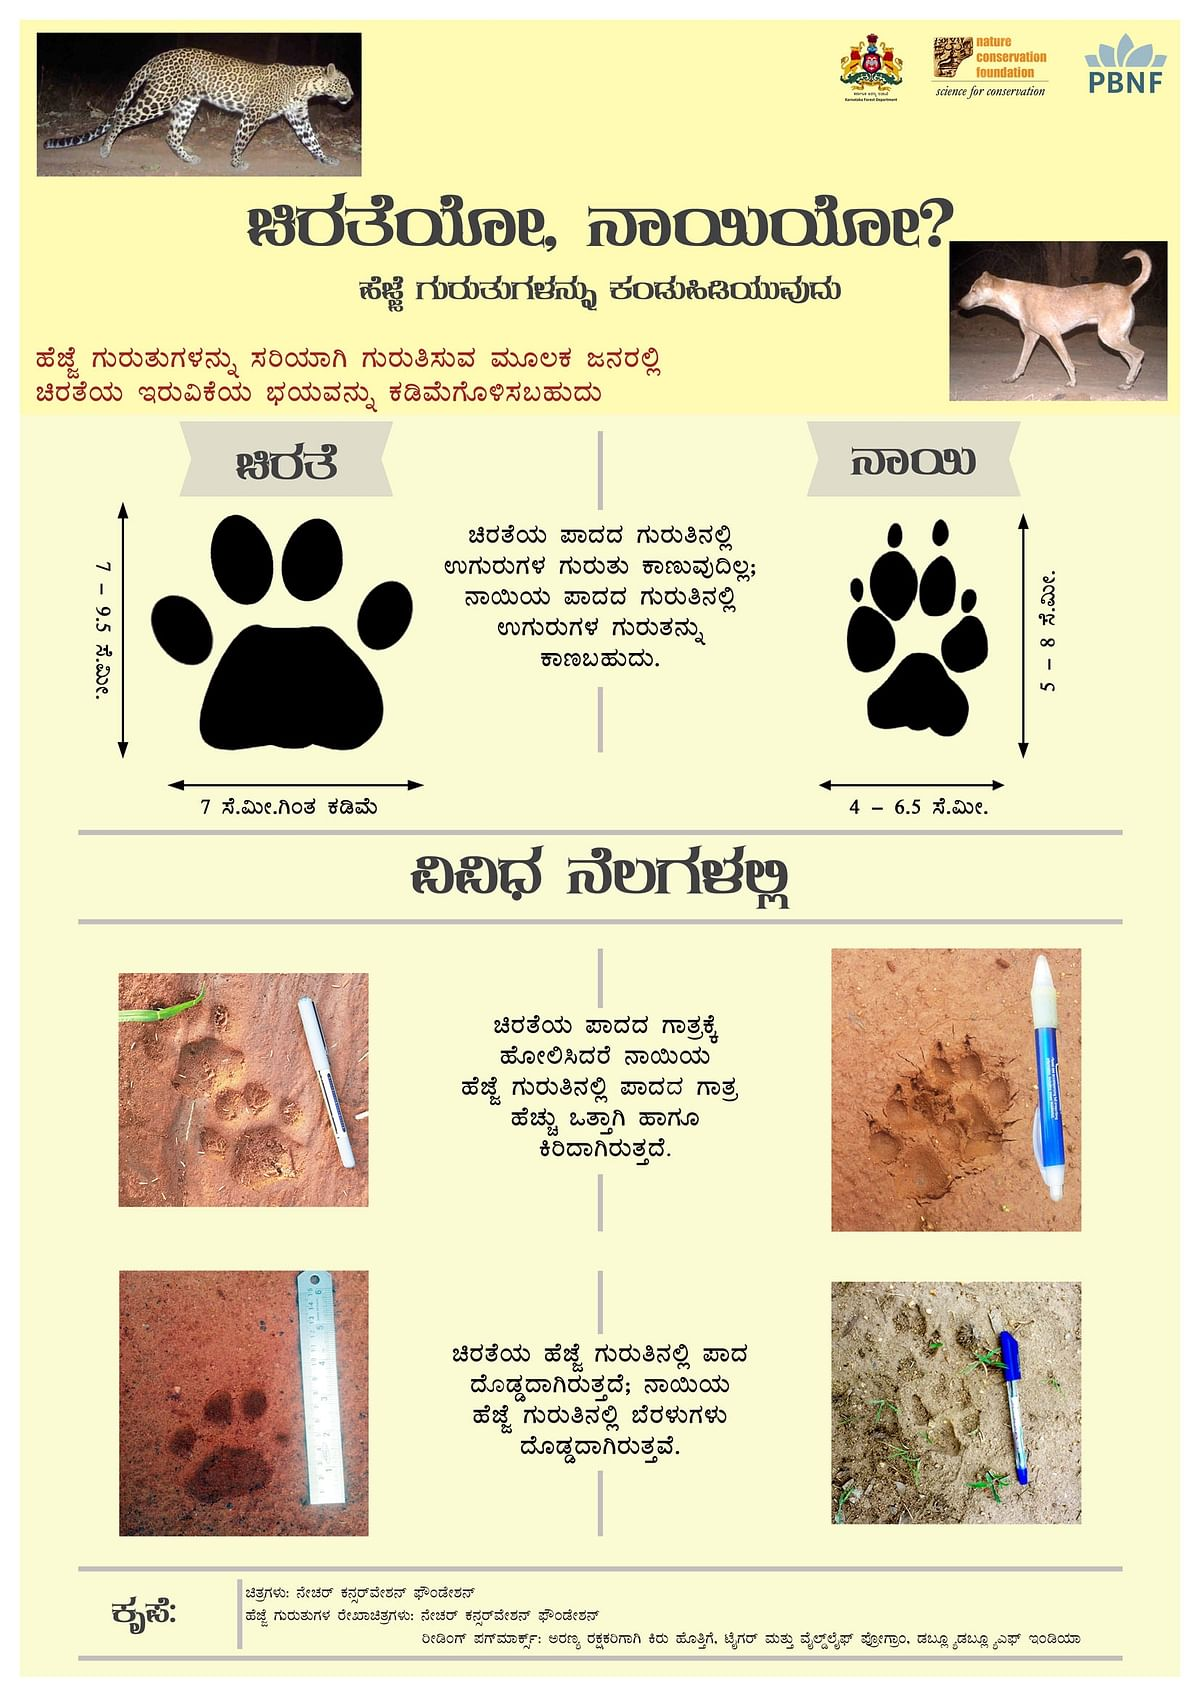 Poster depicting dog and leopard pugmarks designed to help reduce anxiety and tensions- Kannada version